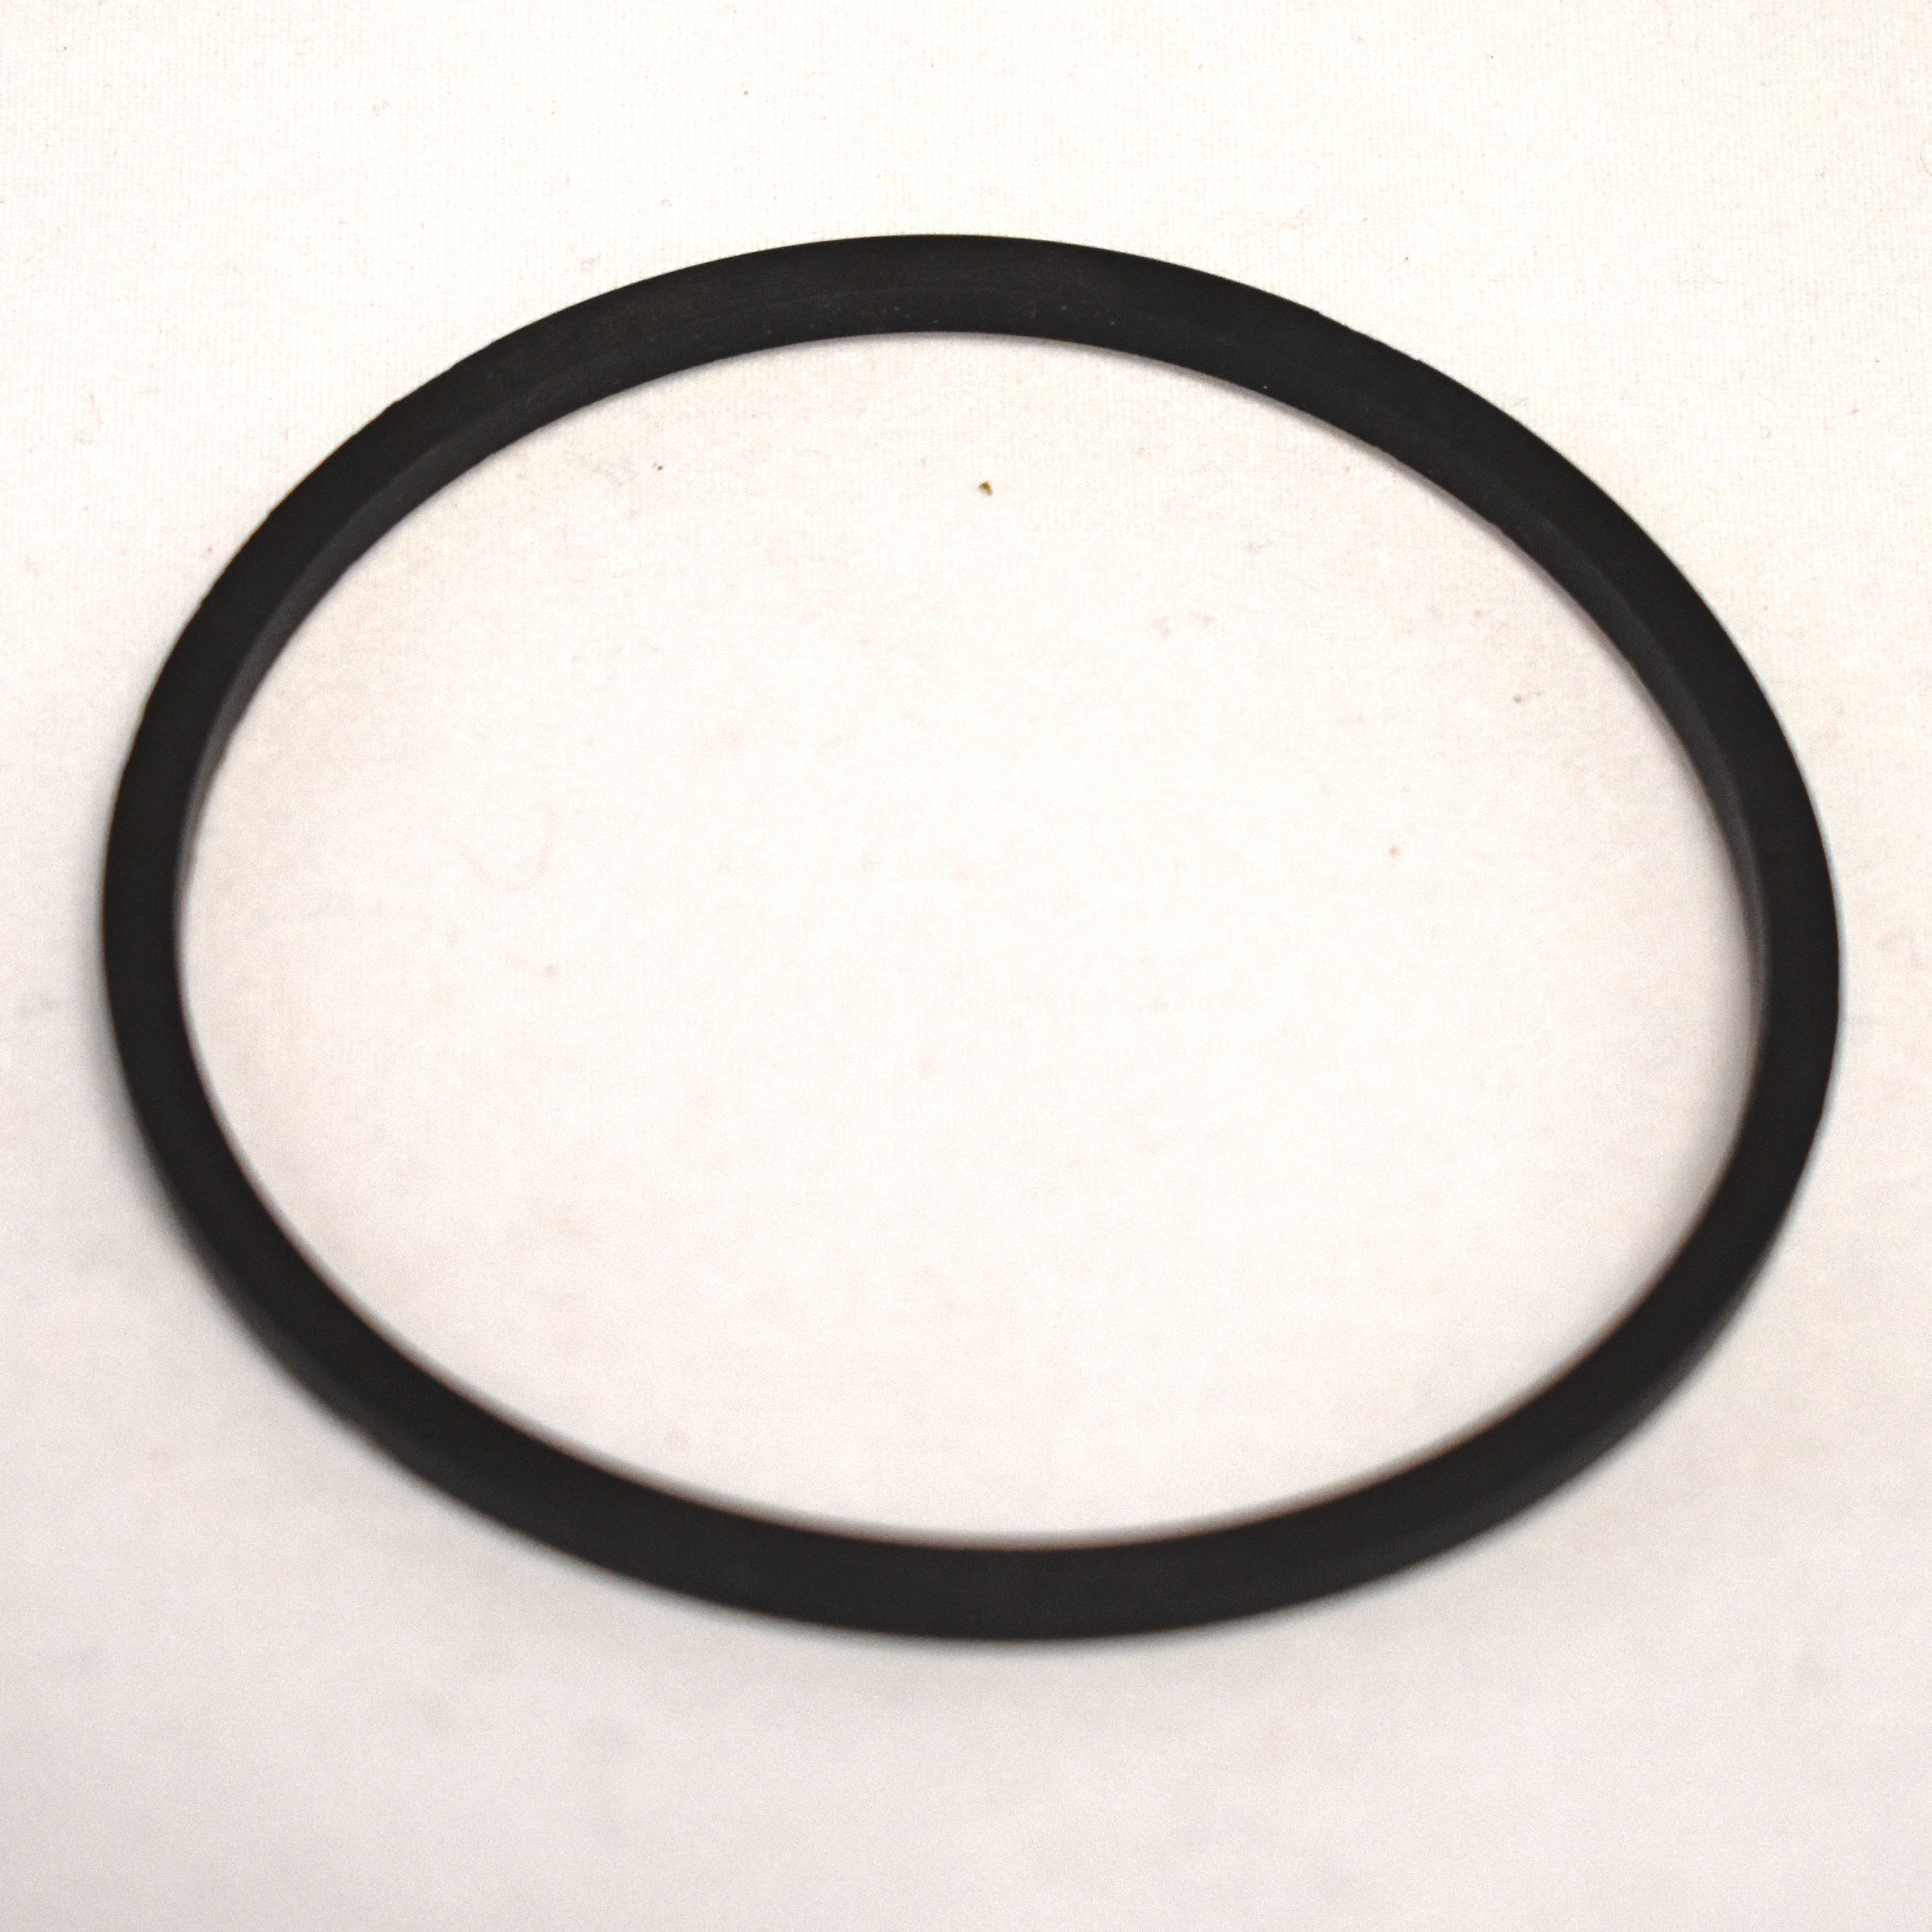 "LS-210001 O-Ring for GNC 3/4"" or 1"" Suction Filter Bowl"